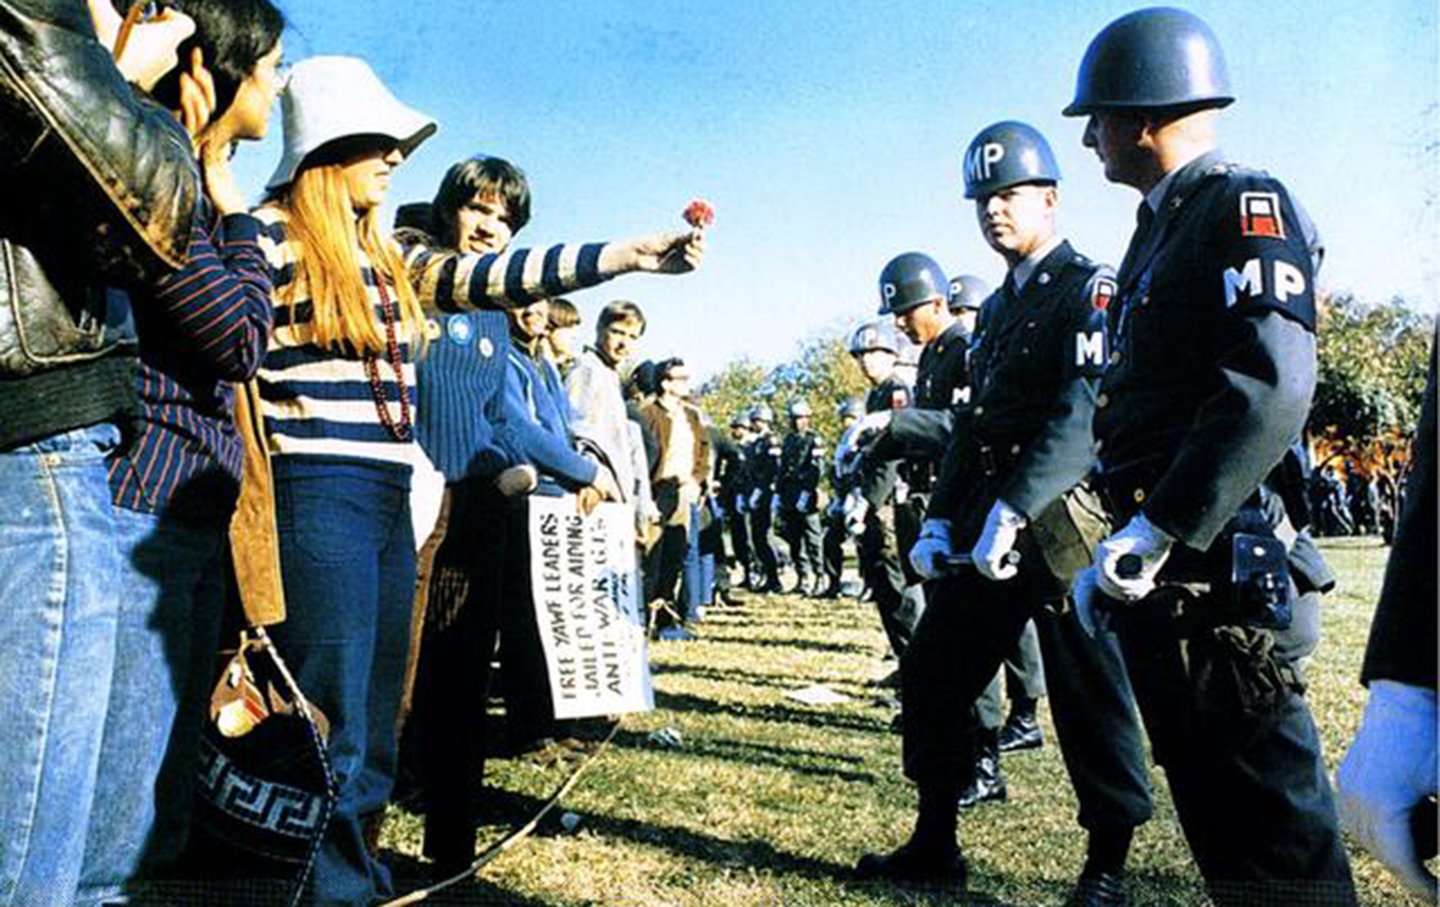 A demonstrator offers a flower to military police at a Vietnam War demonstration at the Pentagon in 1967.